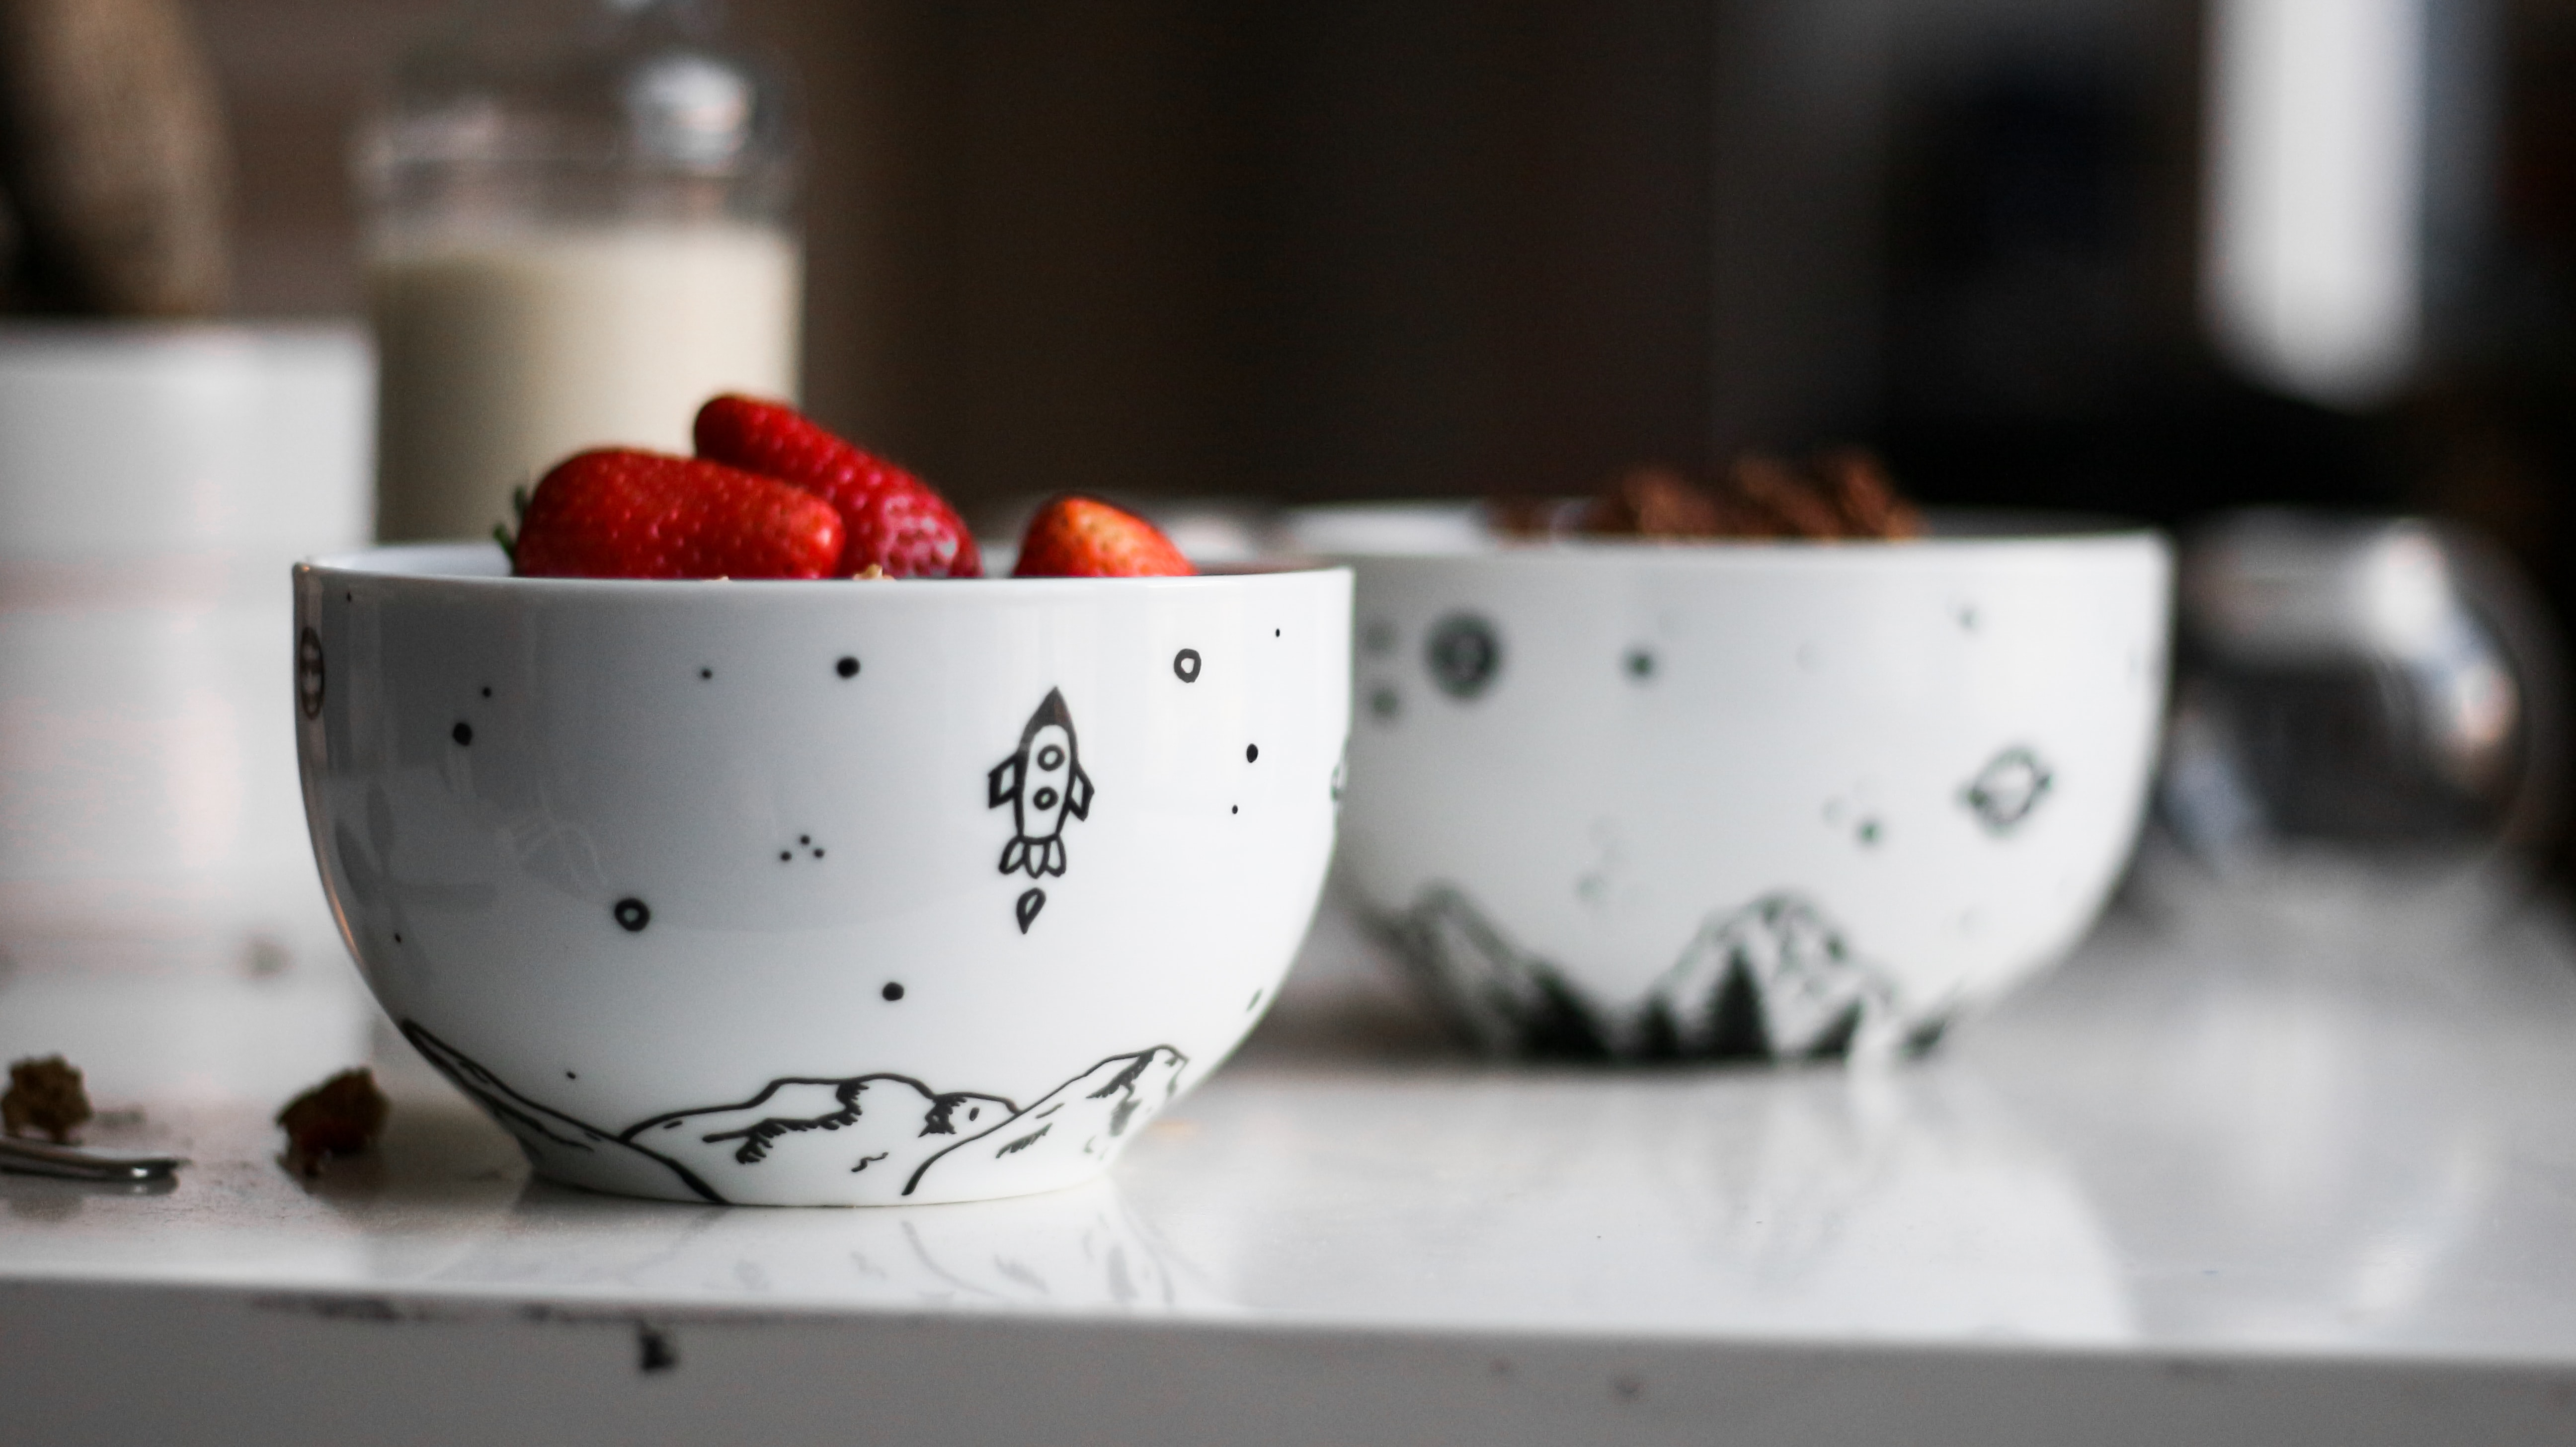 two white-and-black ceramic bowls on wooden table